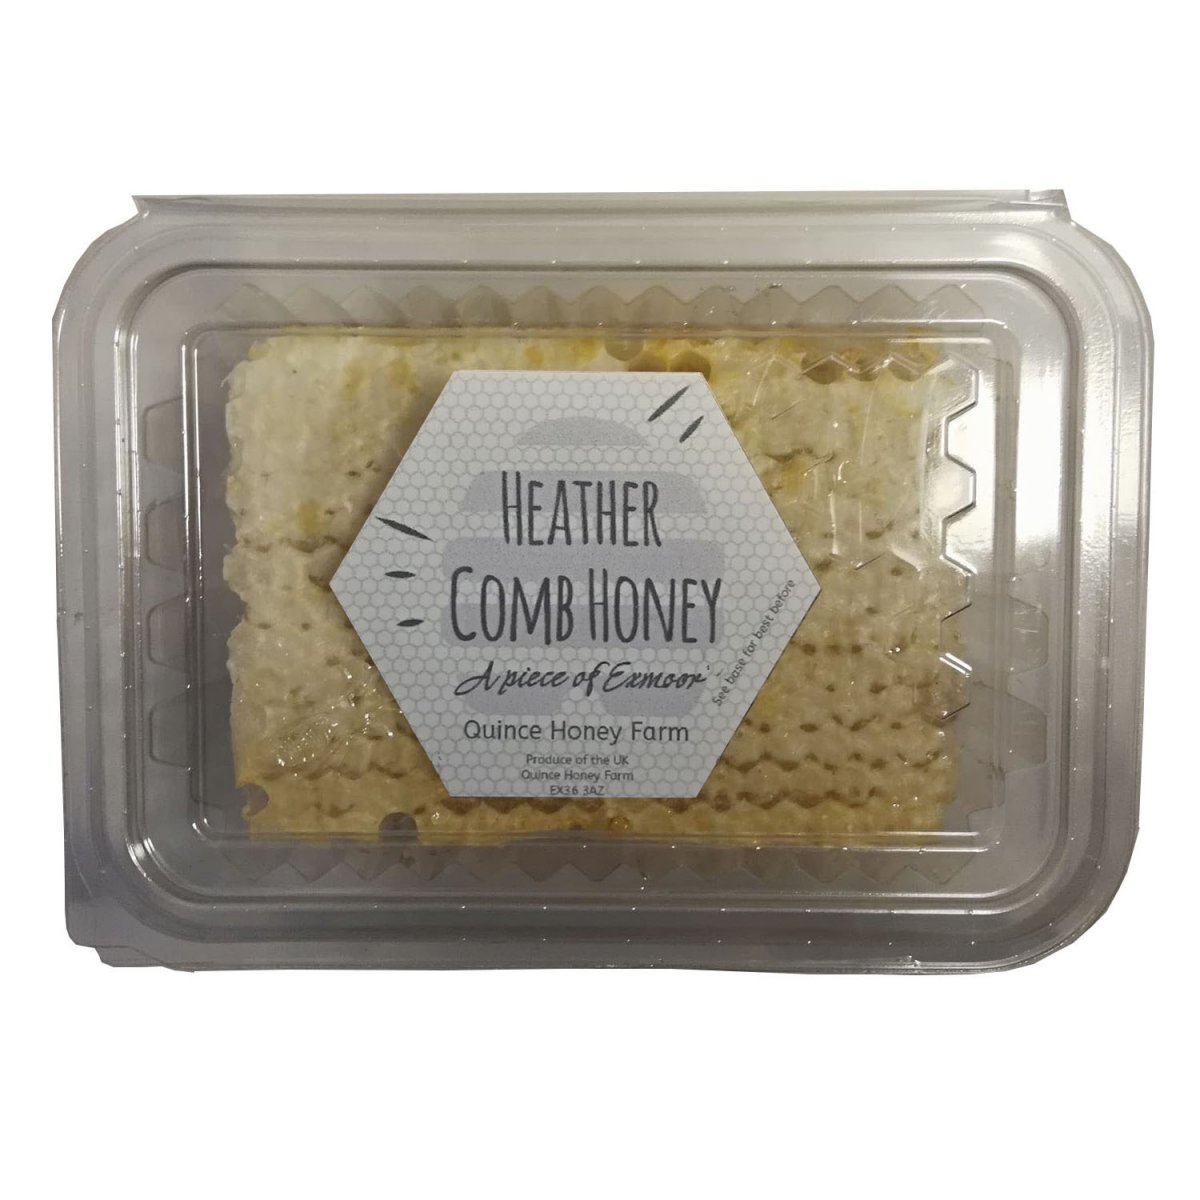 Heather Comb Honey